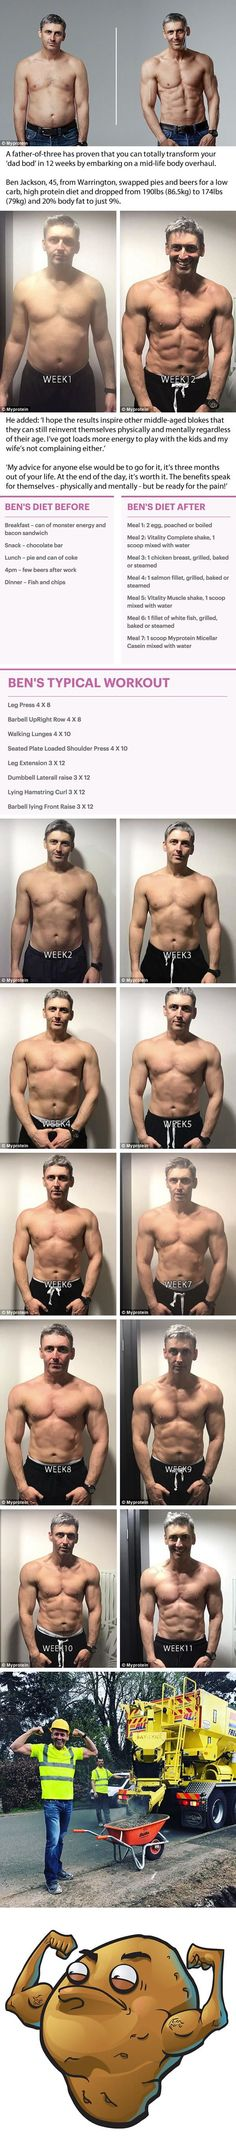 Father-of-three, 45, reveals the results of his incredible 12-week transformation